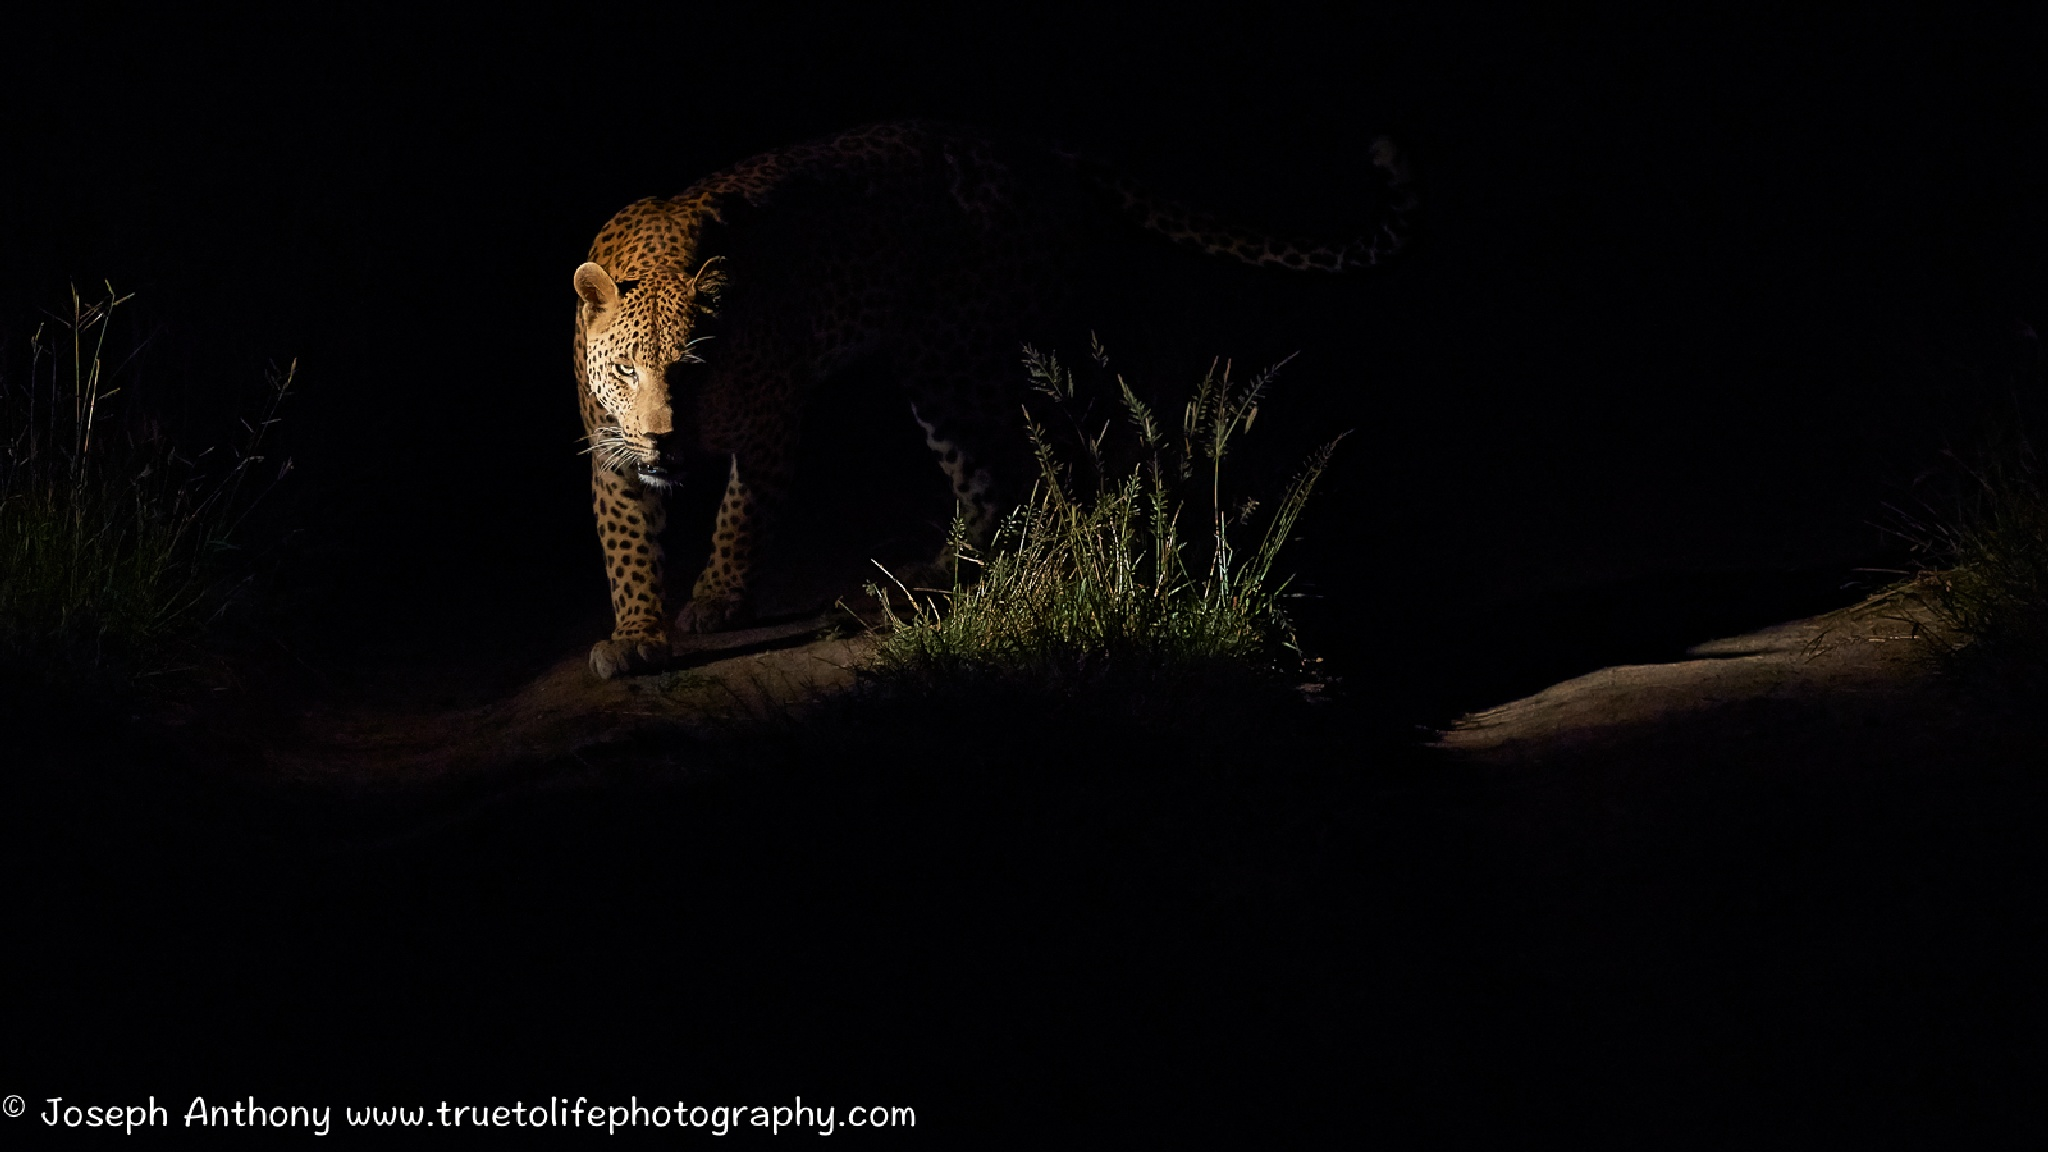 The essence of a leopard by Joseph Anthony